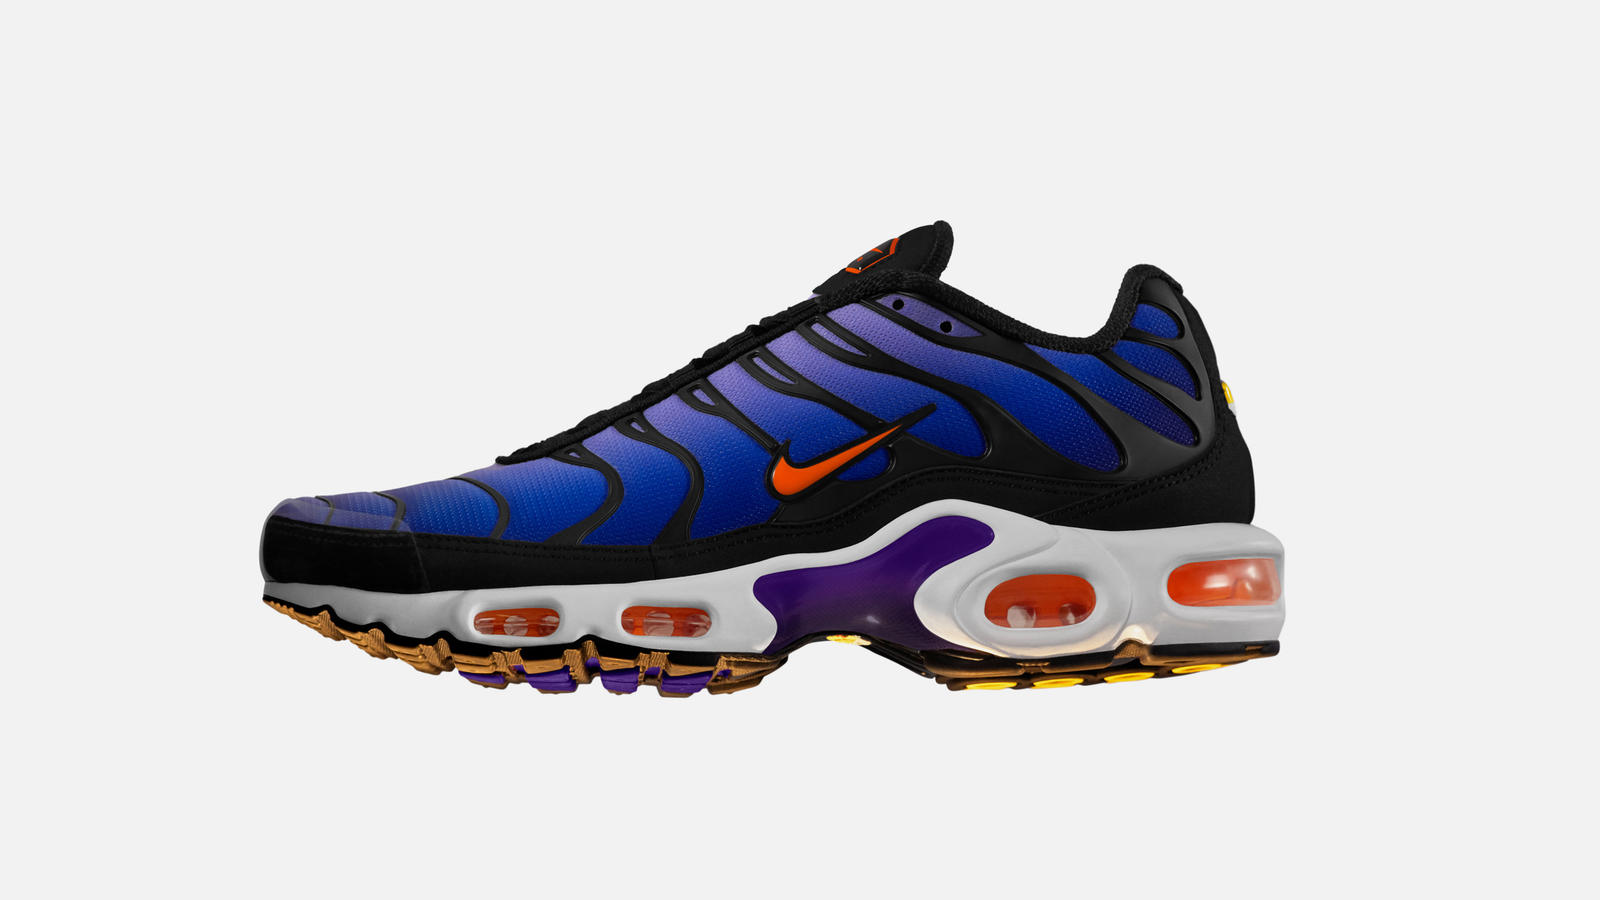 premium selection 63149 73c16 Nike to Relaunch the Air Max Plus in Classic Hyperblue ...